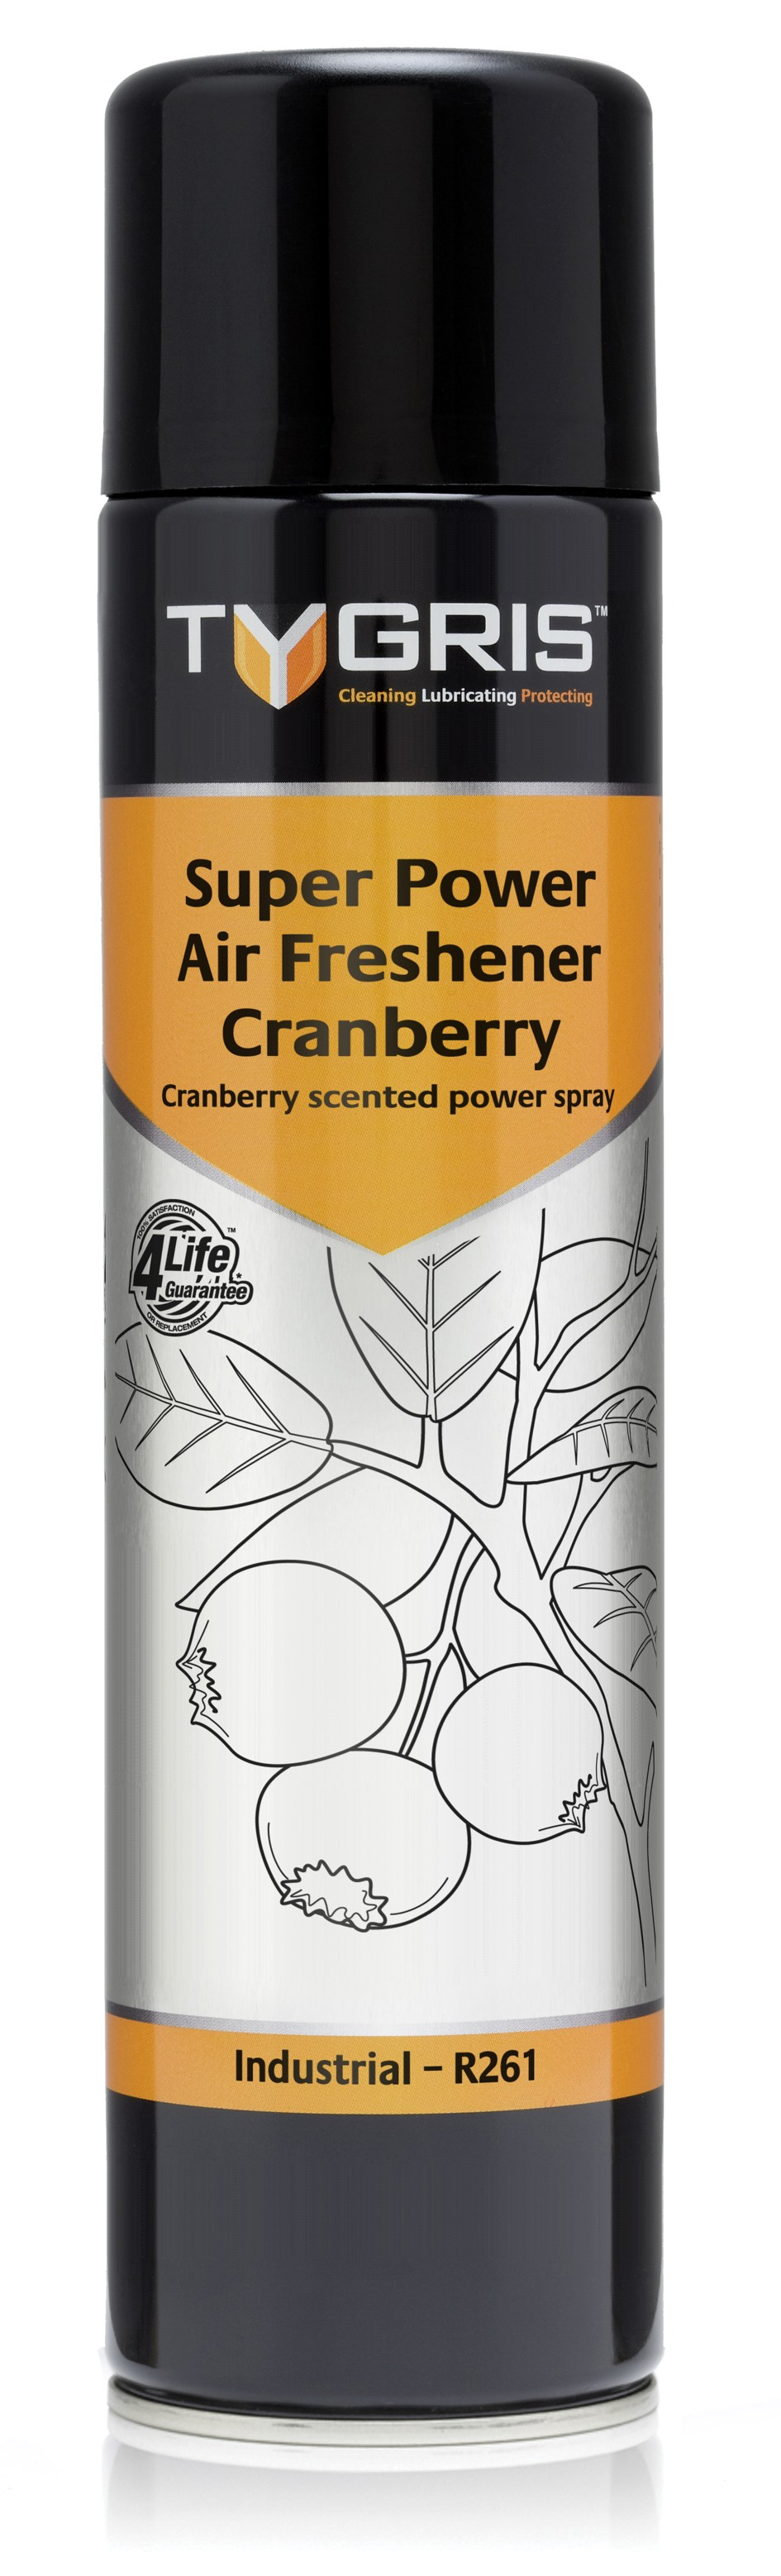 R261 Super Power Air Freshener - Cranberry